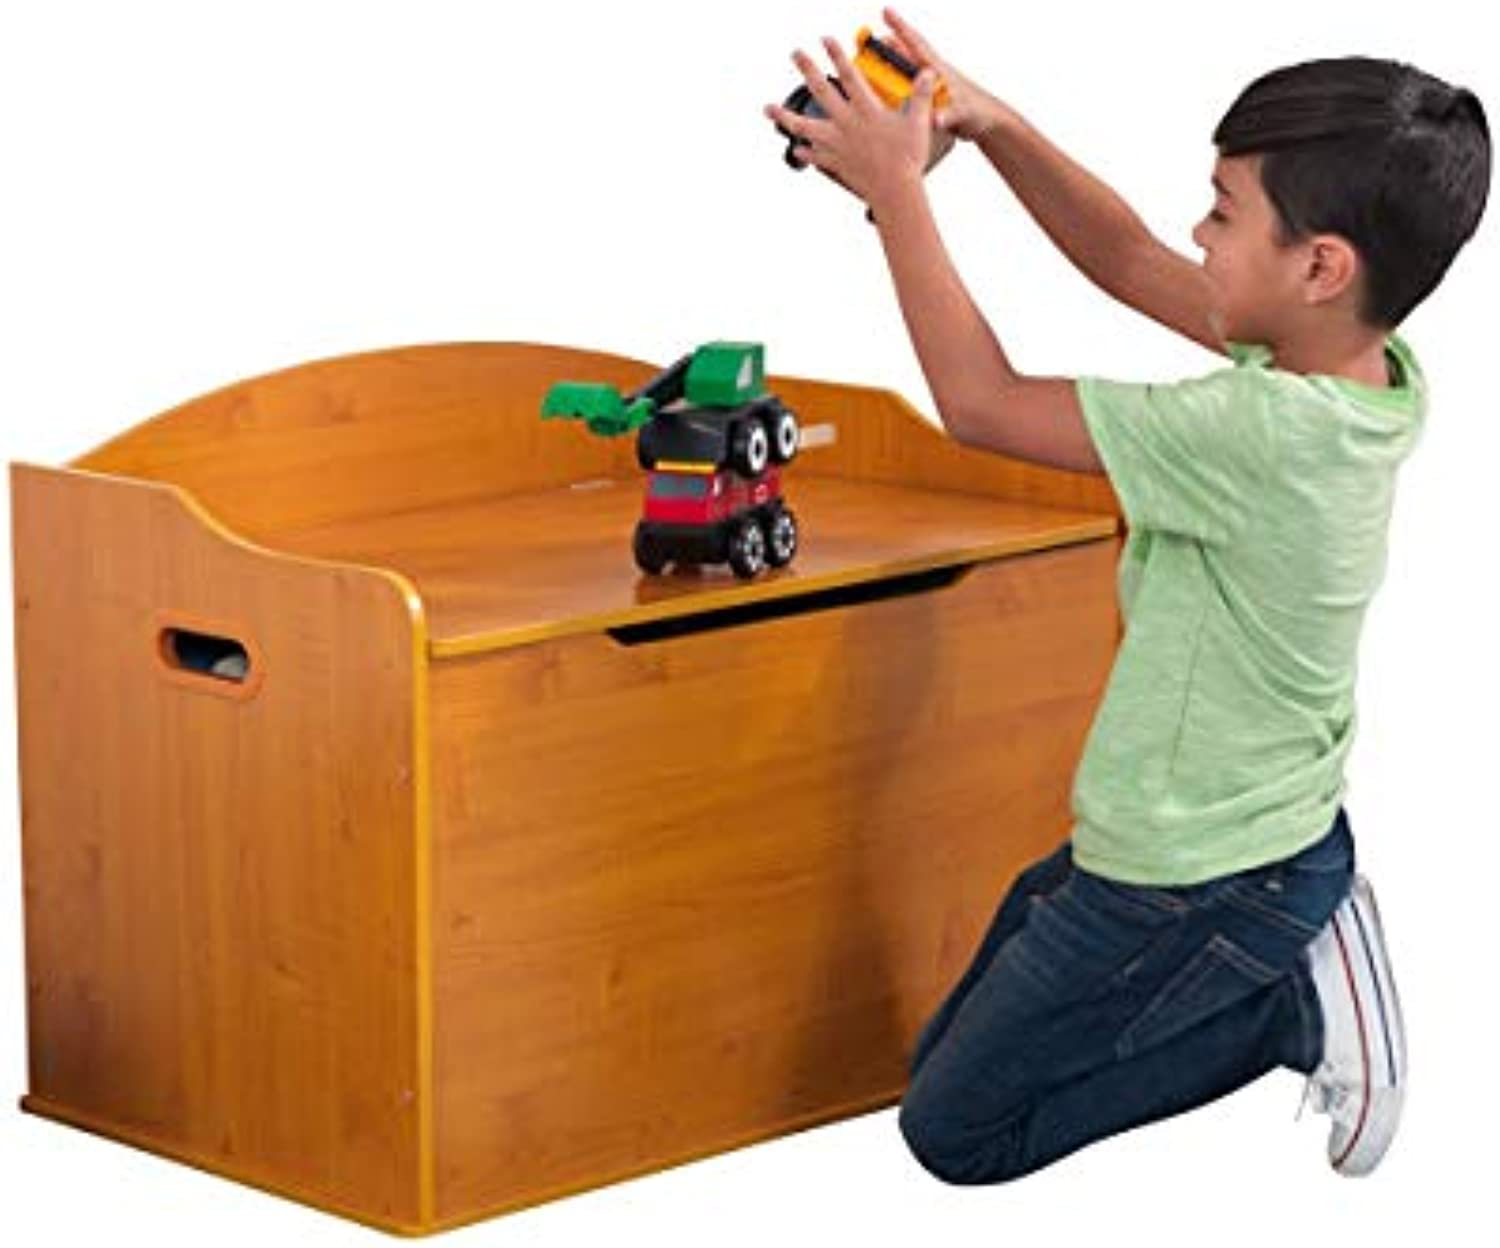 KidKraft 14954 Austin Toy Box, Honey